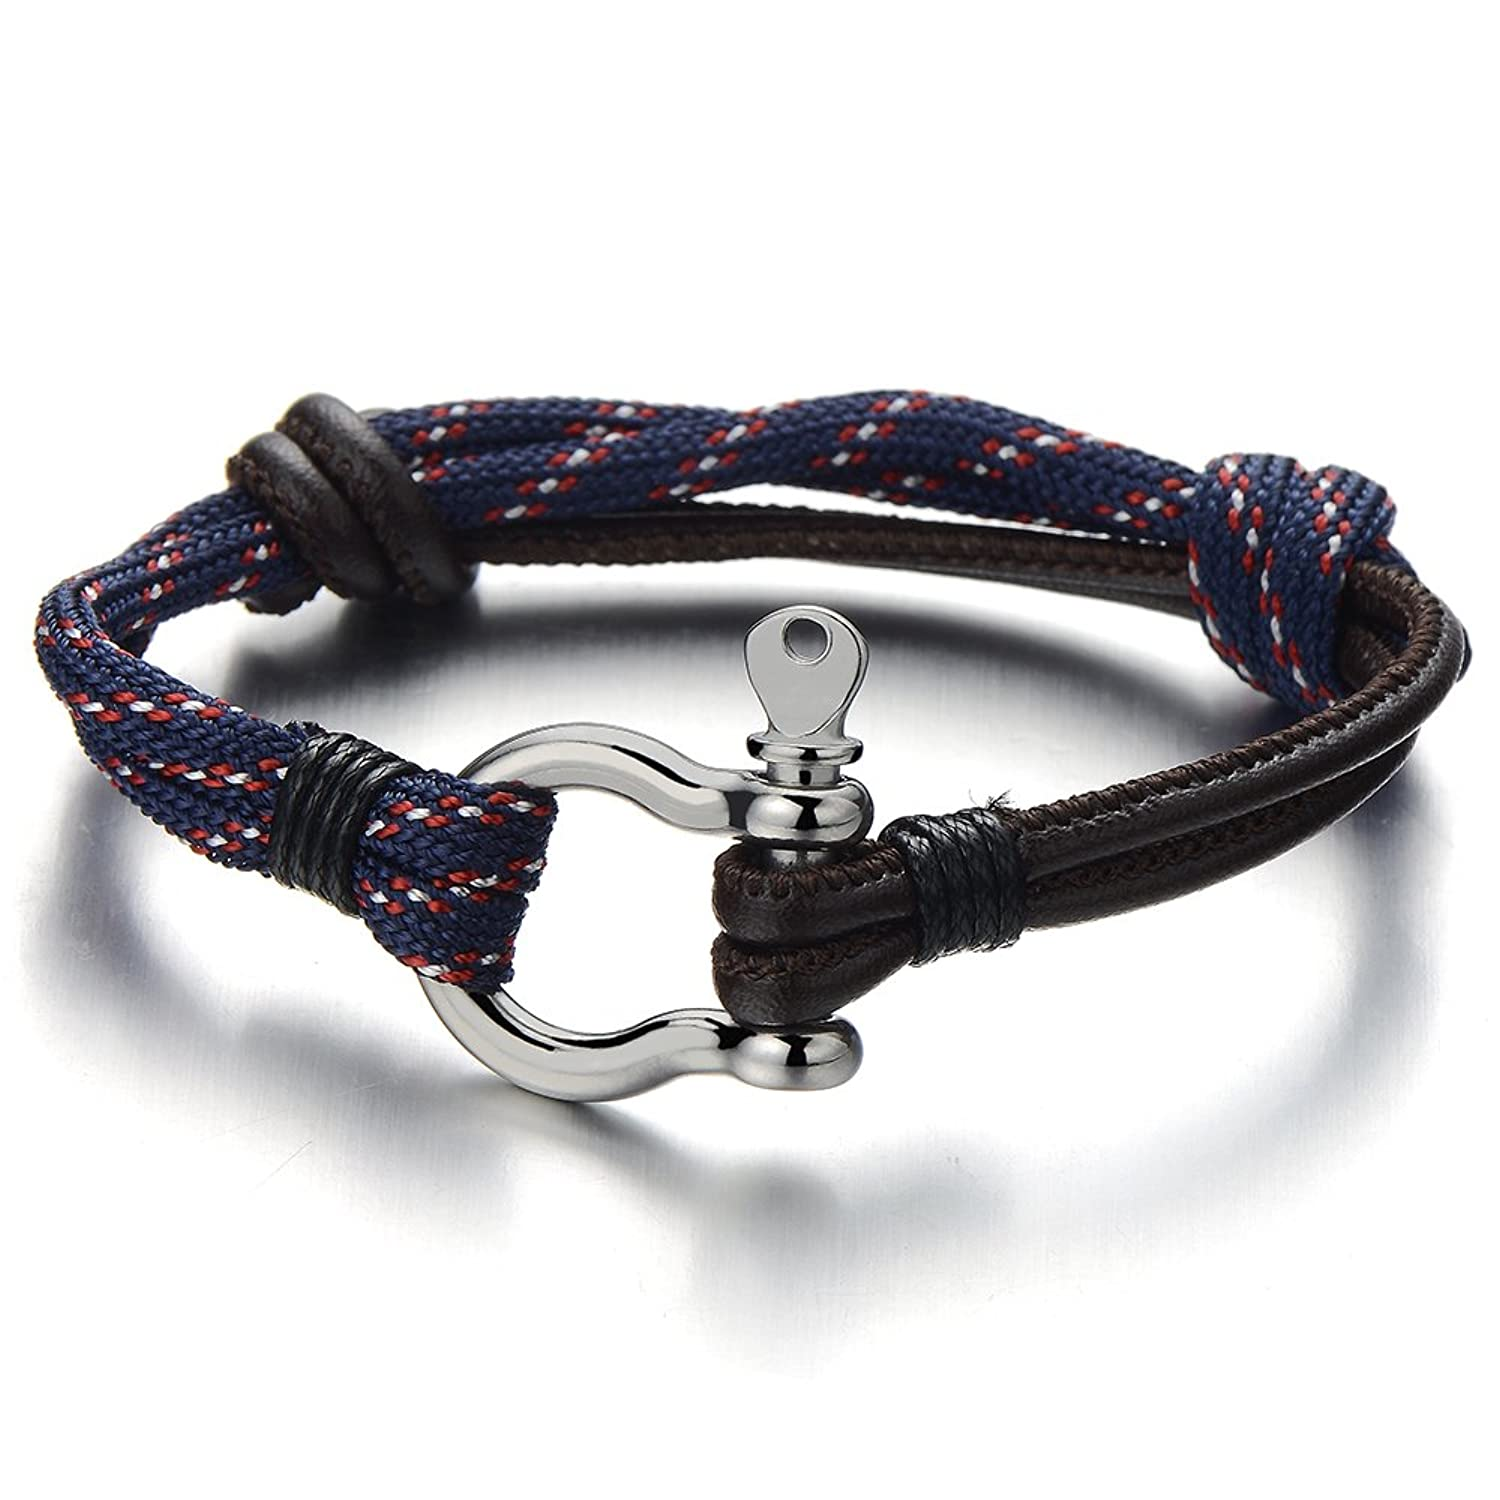 him blue navy fullxfull onyx for boyfriend listing braceletmens nautical sailor duuv bracelet mens gift il rope